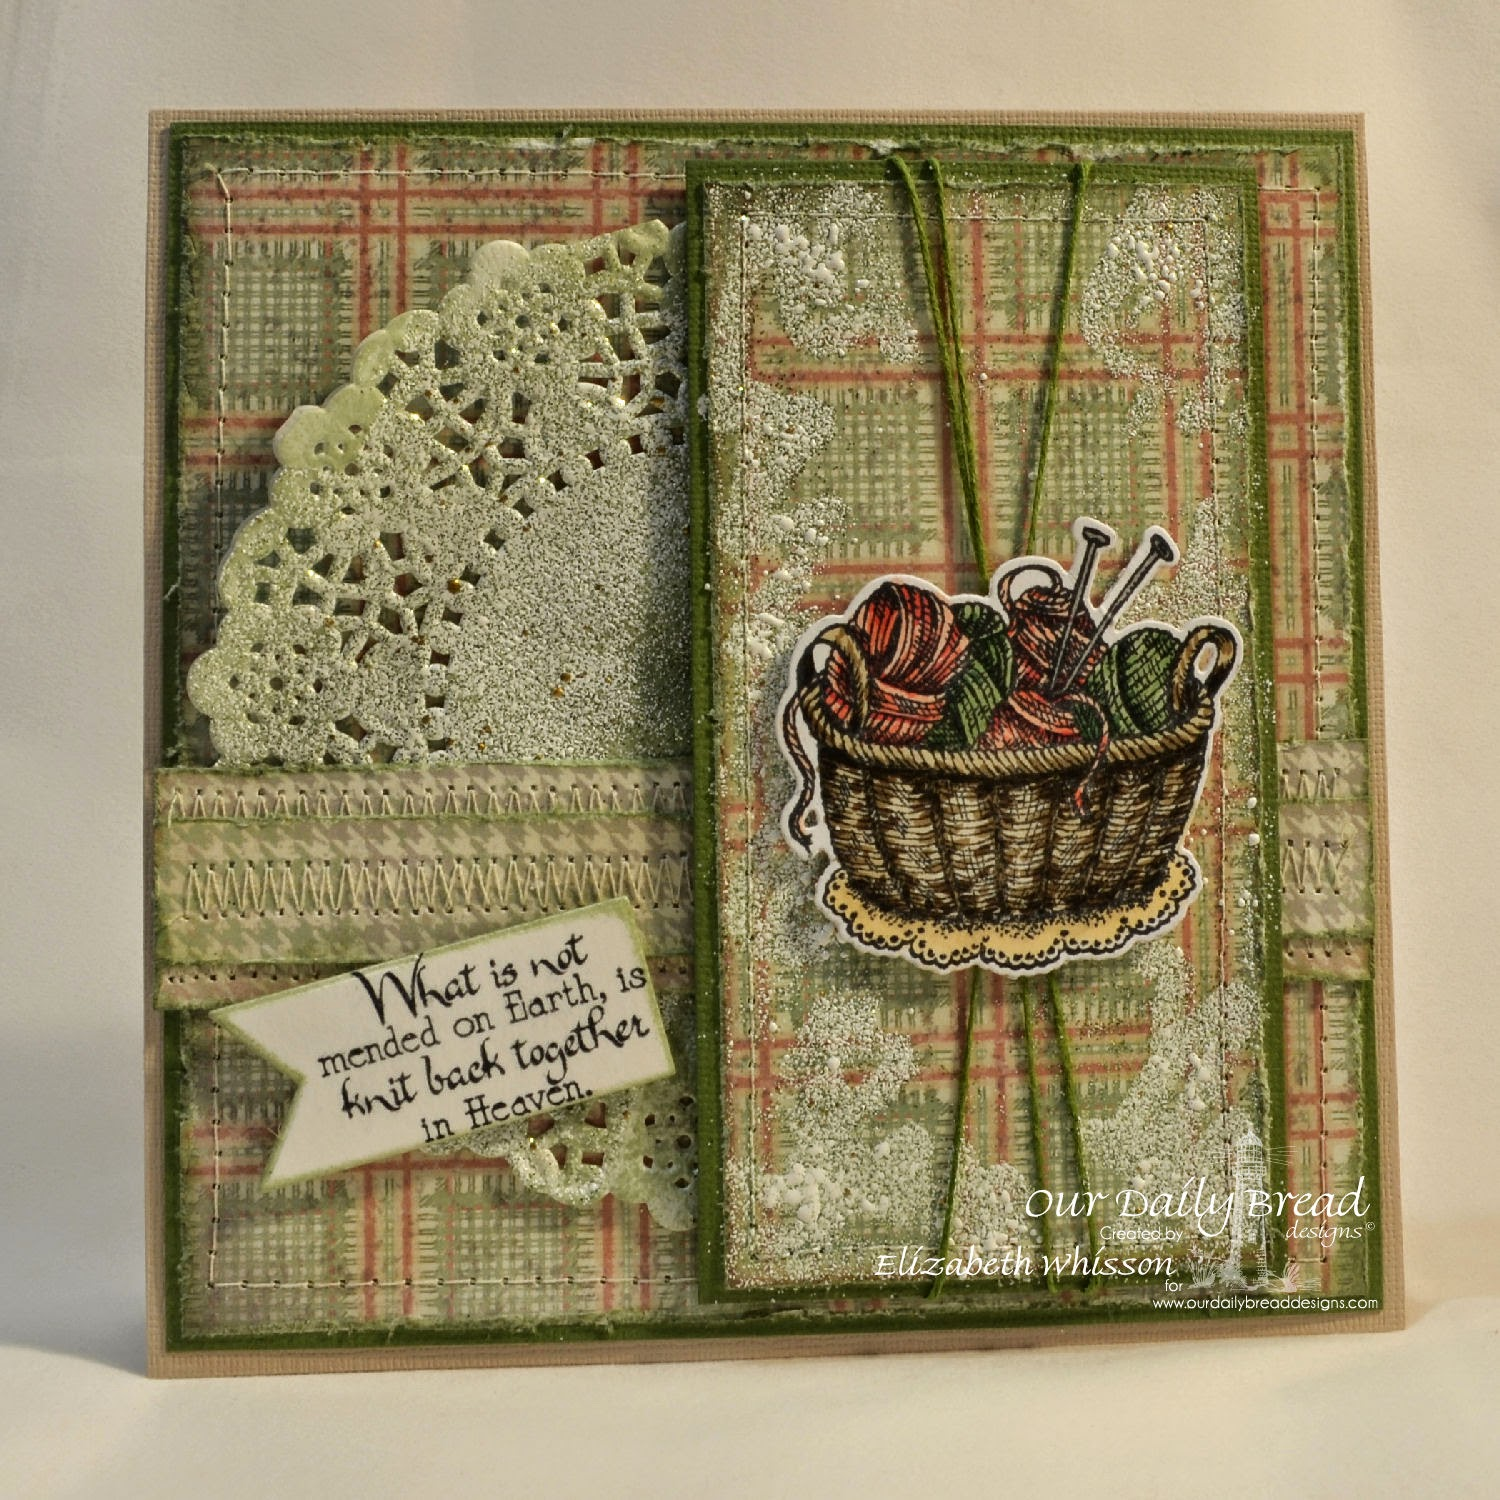 Our Daily Bread Designs, Hand Knit, Knitting Basket and Yarn Dies, Pennant Dies, ODBD Soulful Stitches Paper Collection, designed by Elizabeth Whisson